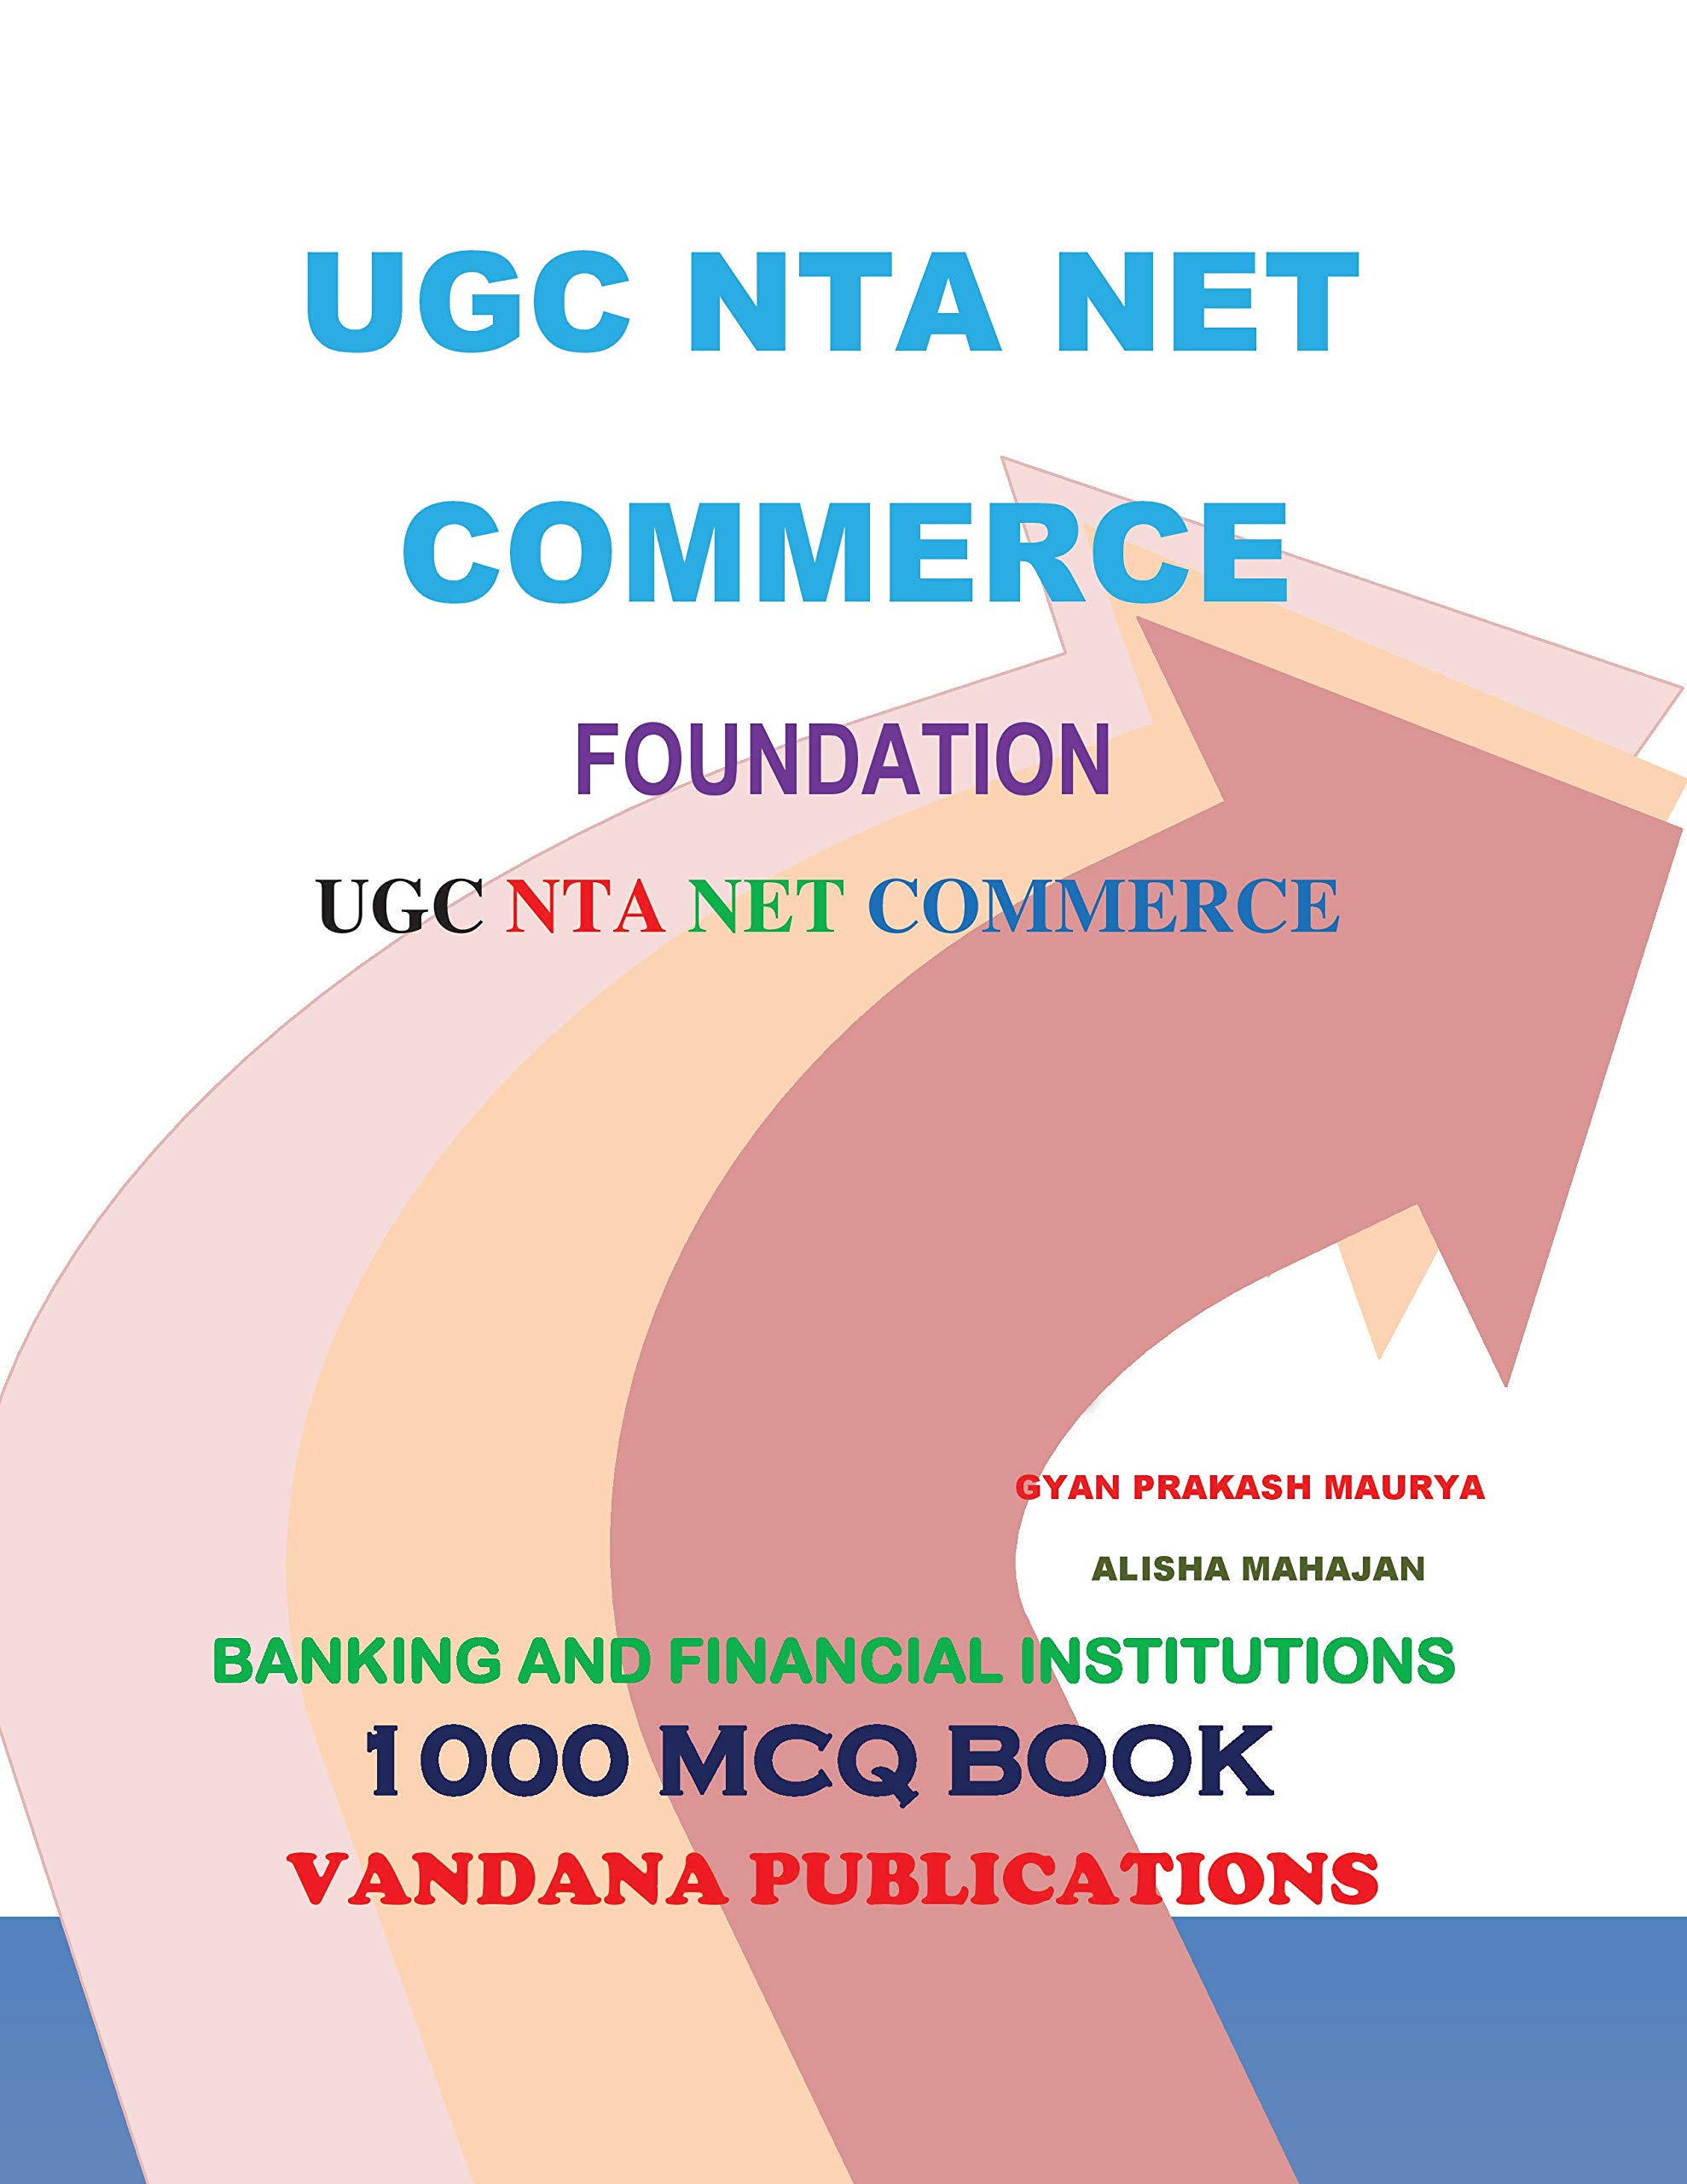 BANKING AND FINANCIAL INSTITUTIONS 1000 MCQ BOOK (1000 MCQ SEIRES 4)